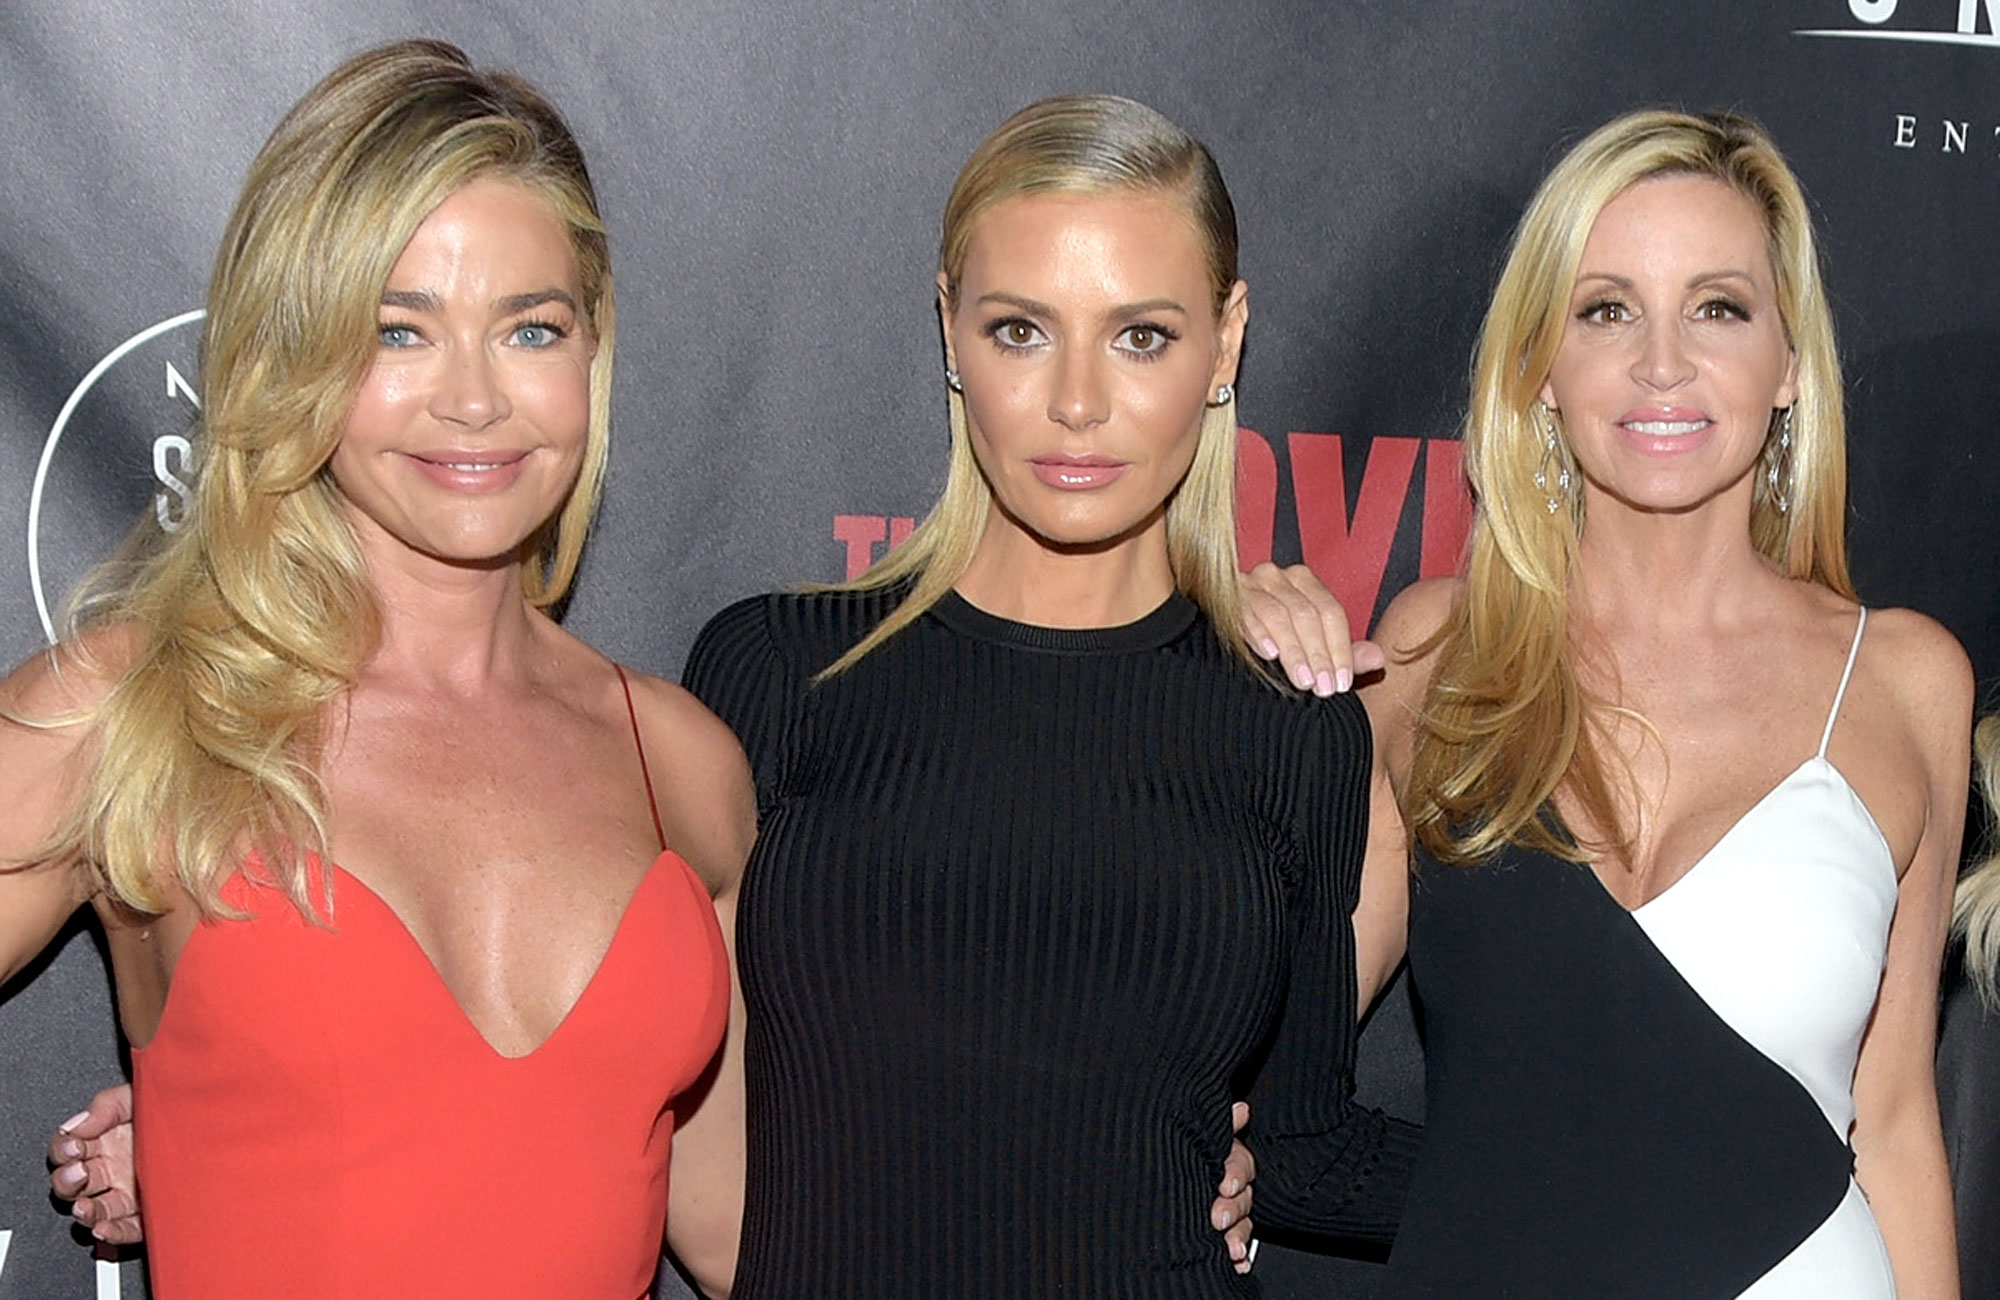 Denise Richards, Dorit Kemsley, Camille Grammer, The Real Housewives of Beverly Hills, RHOBH, Bravo